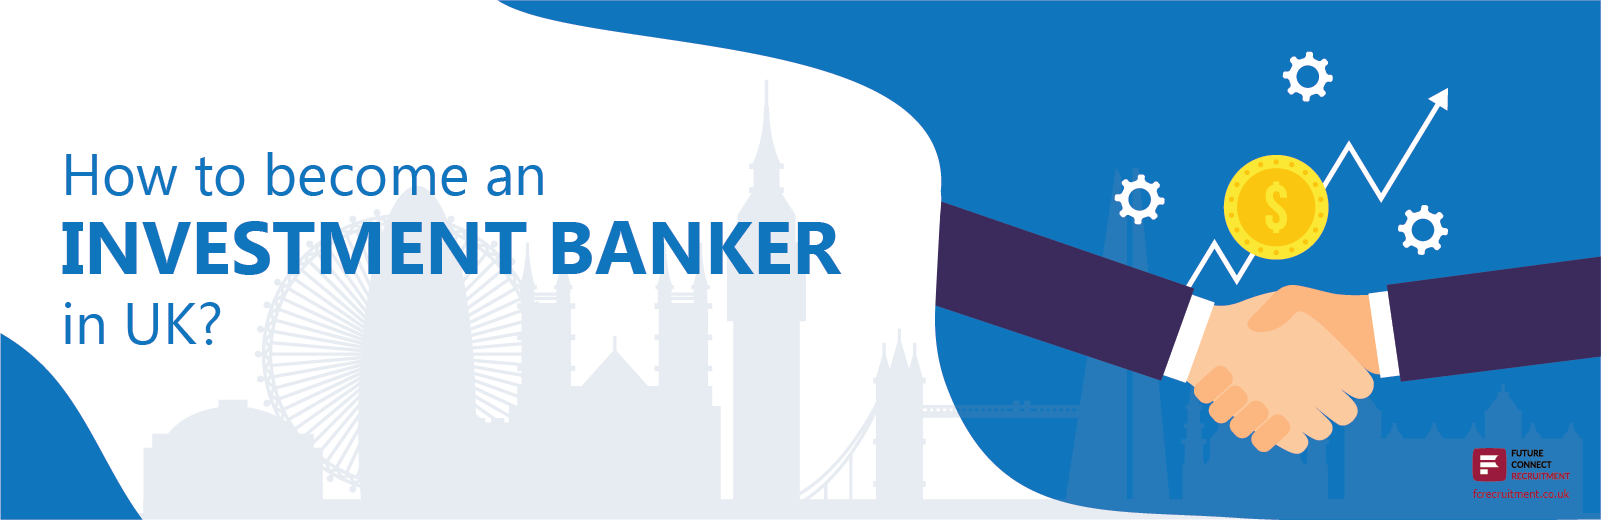 How to become an investment banker in the UK